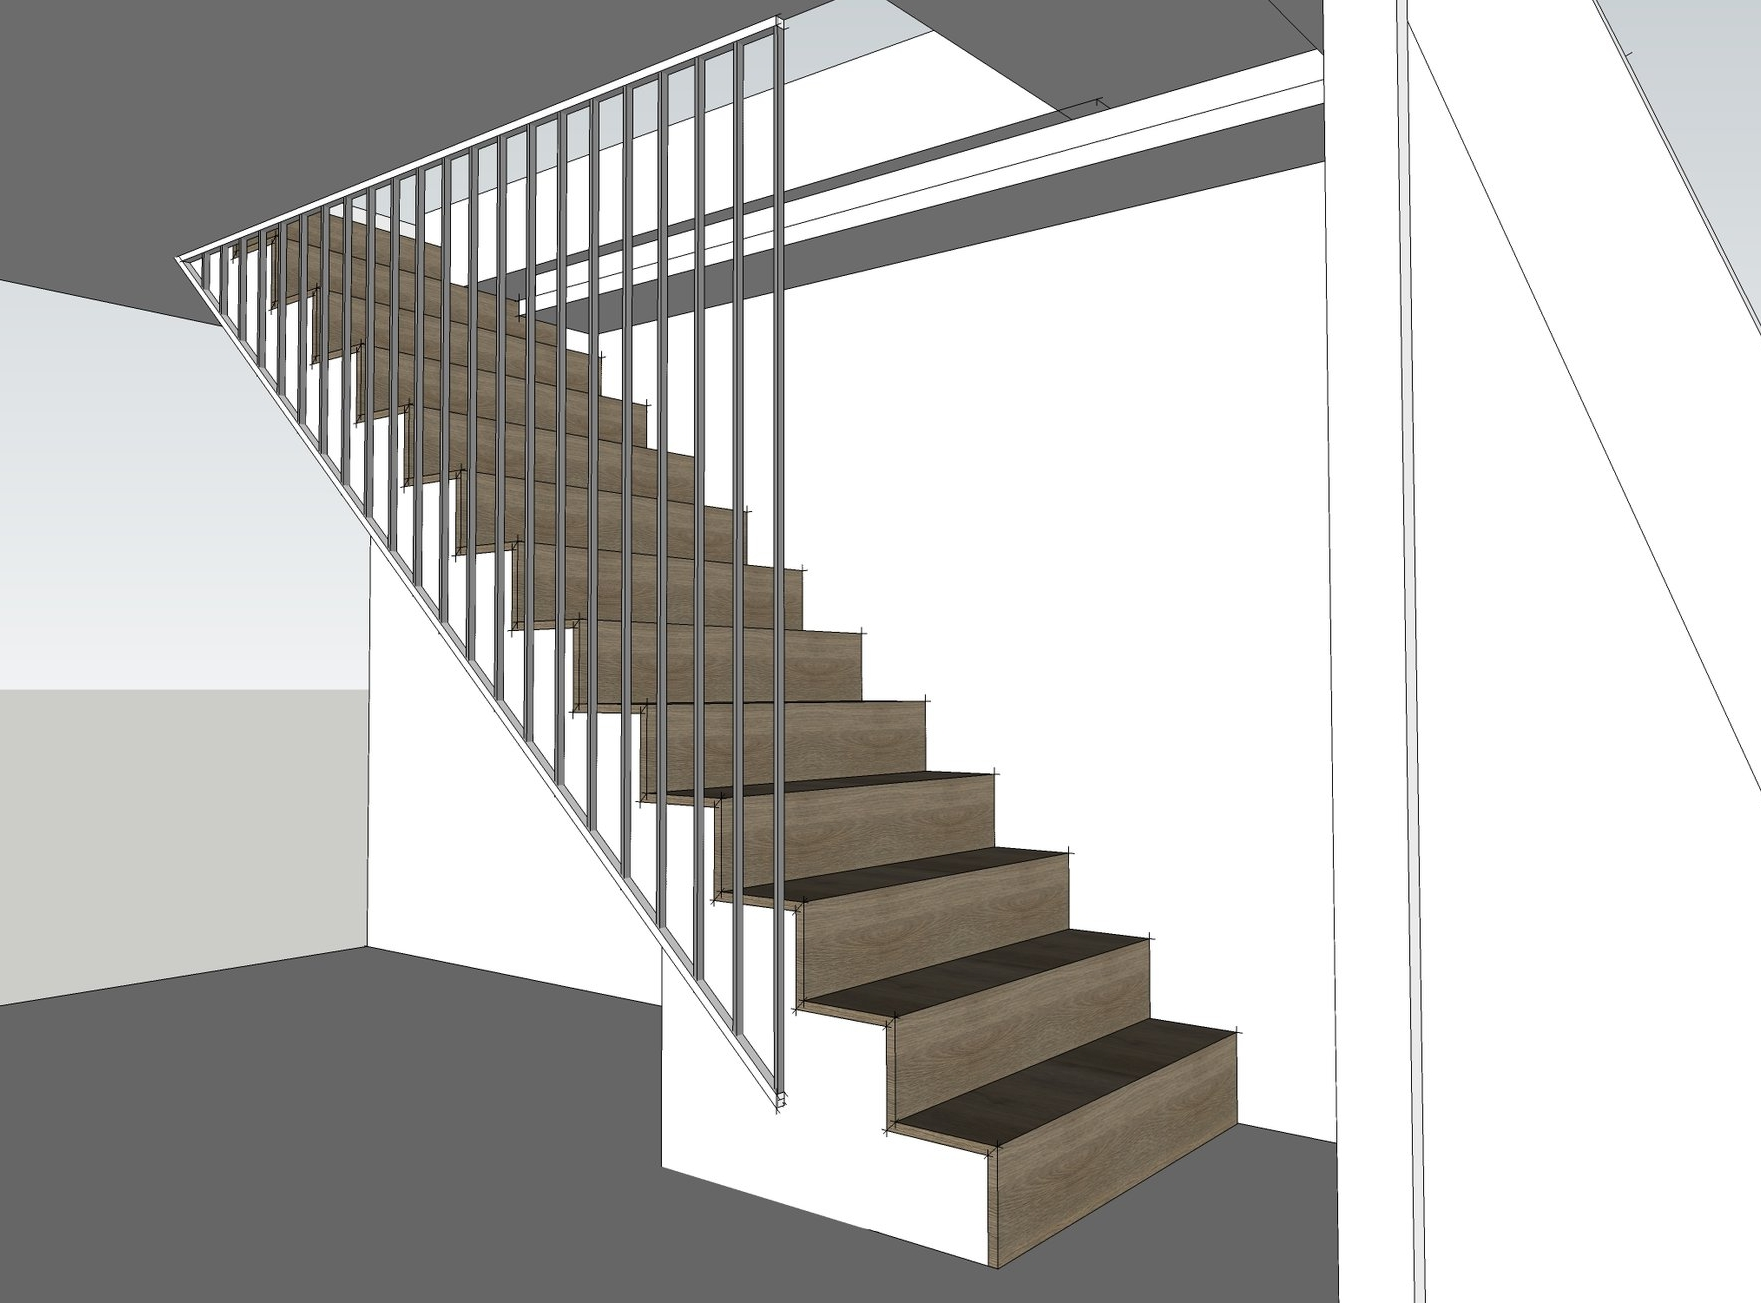 Custom staircase design - clad in timber with metal balustrading